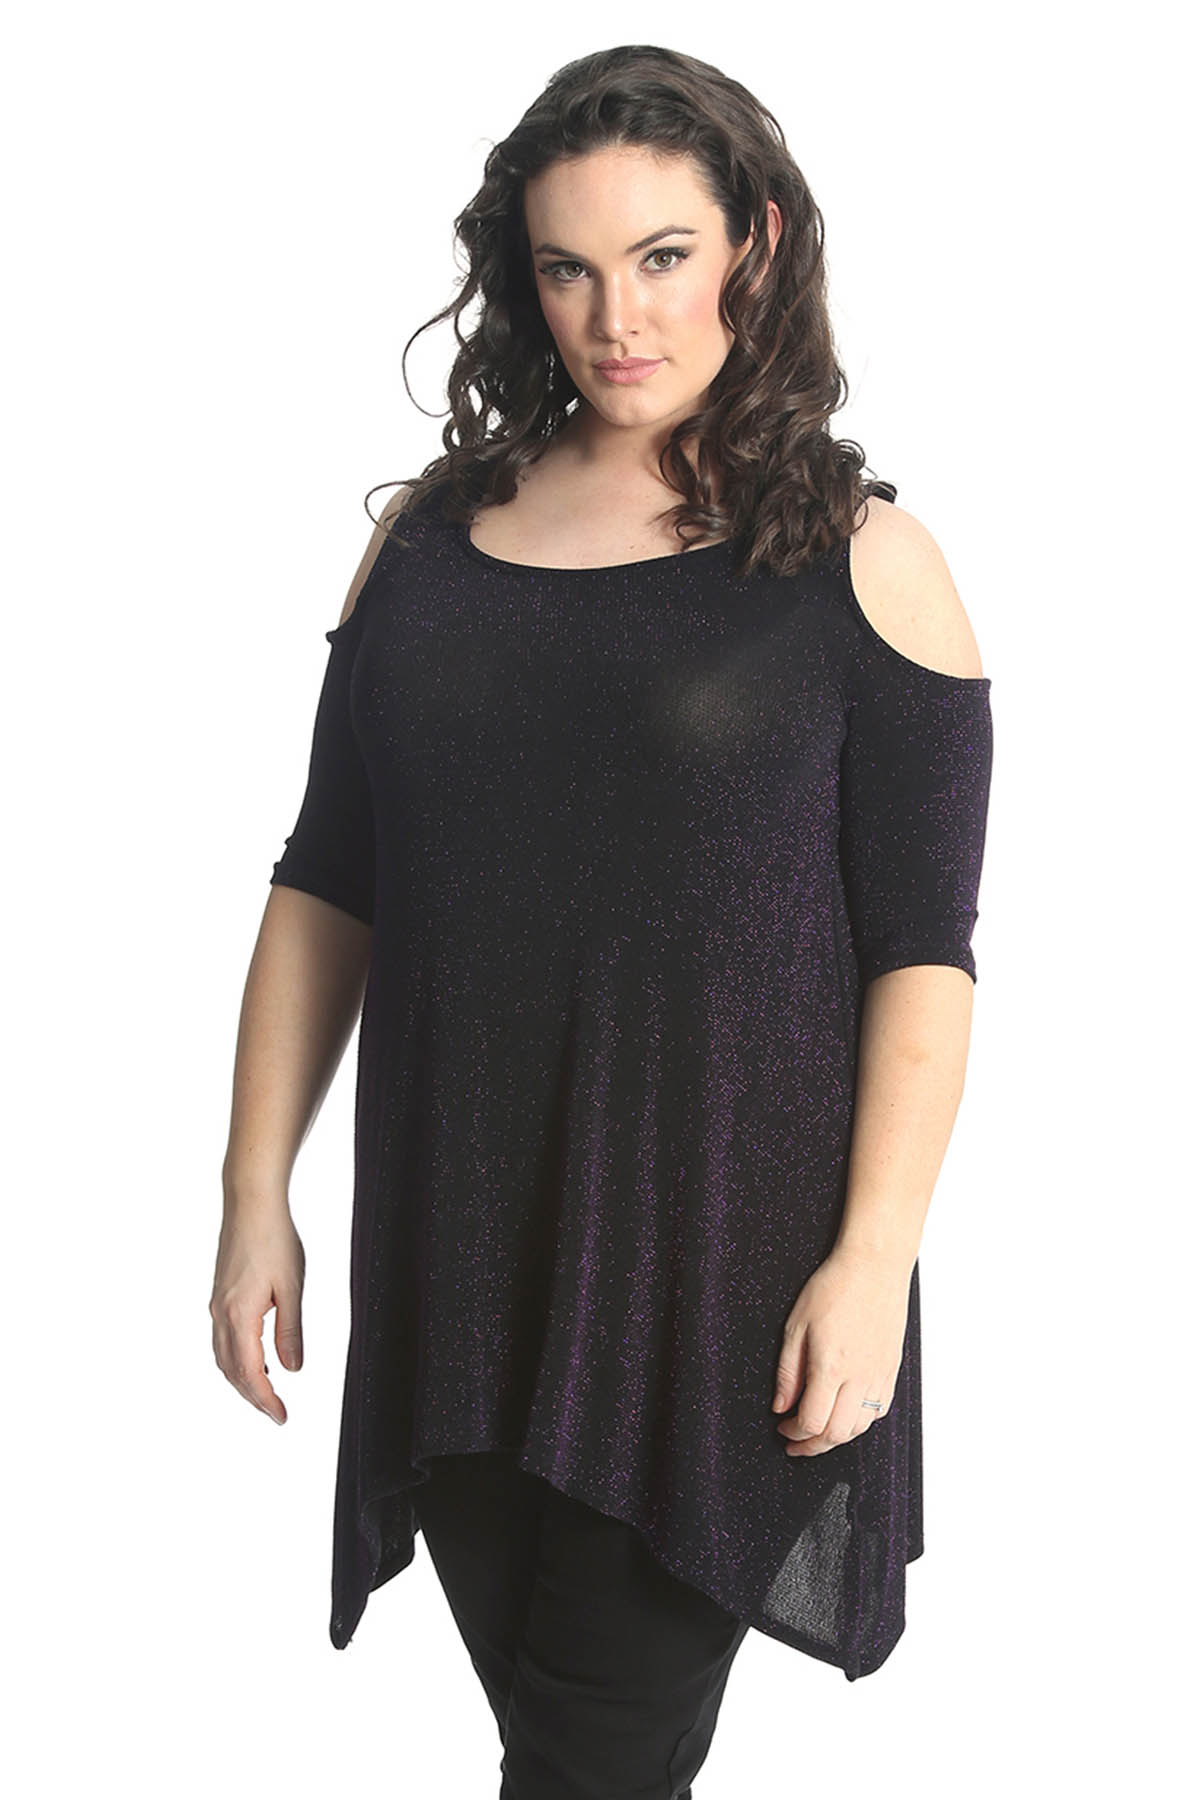 Shop for and buy ladies tops online at Macy's. Find ladies tops at Macy's.